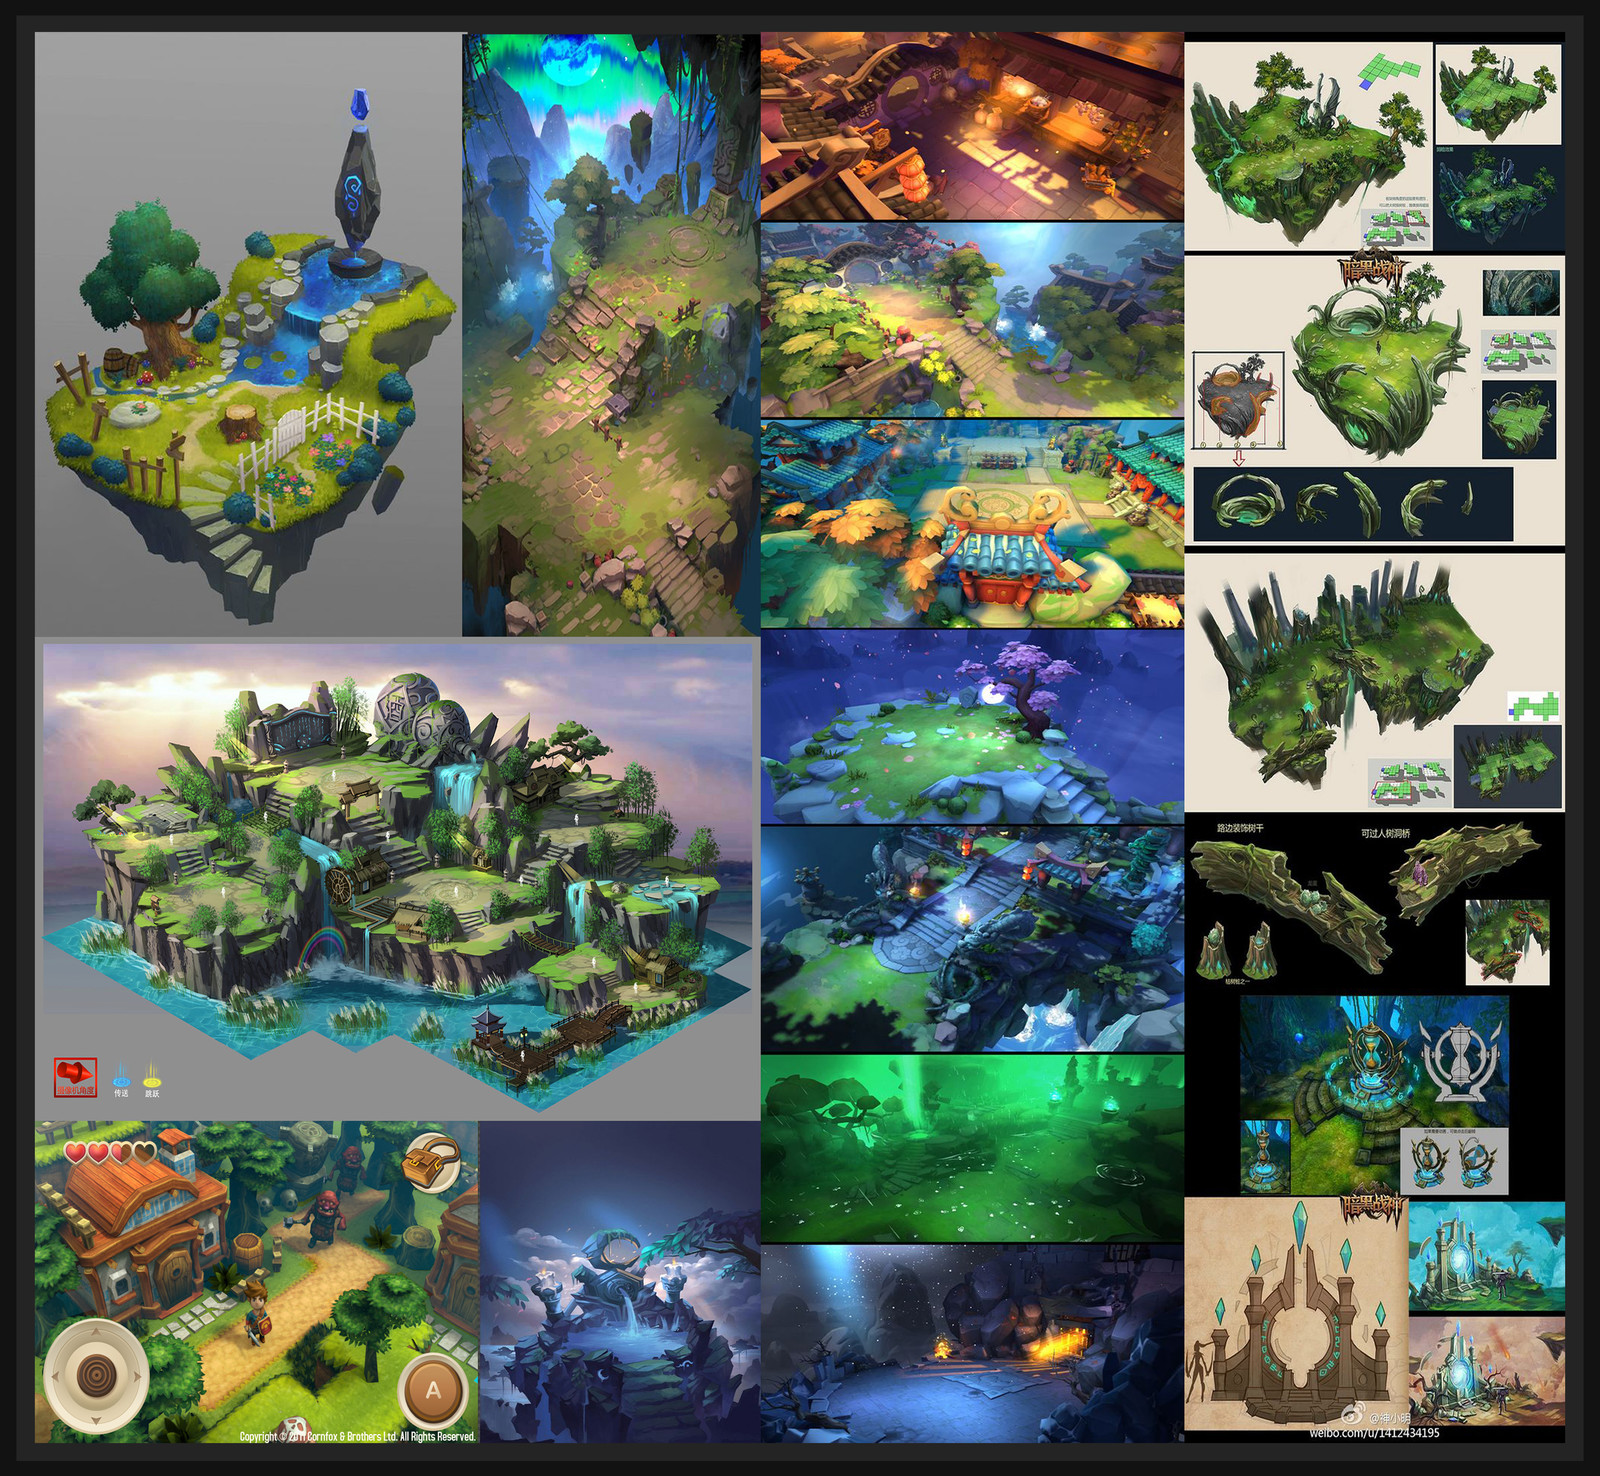 Mood Board made for my environment.